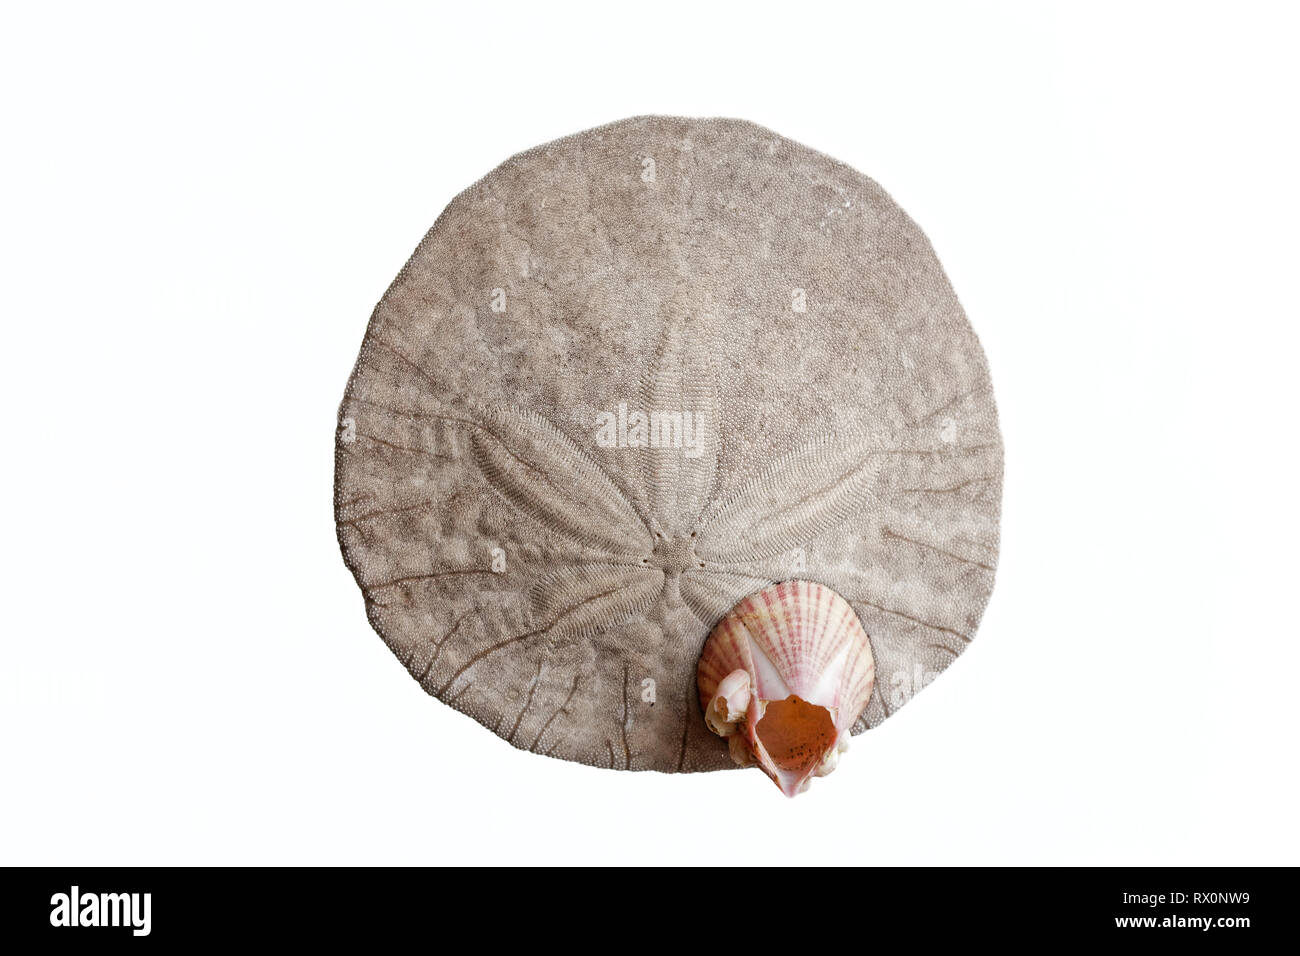 PHOTO: 43,503.04078 -- Closeup of a dead and cleaned Eccentric Sand dollar (Dendraster ecentricus, family Dendrasteridae, Sea Urchin class Echinoidea - Stock Image